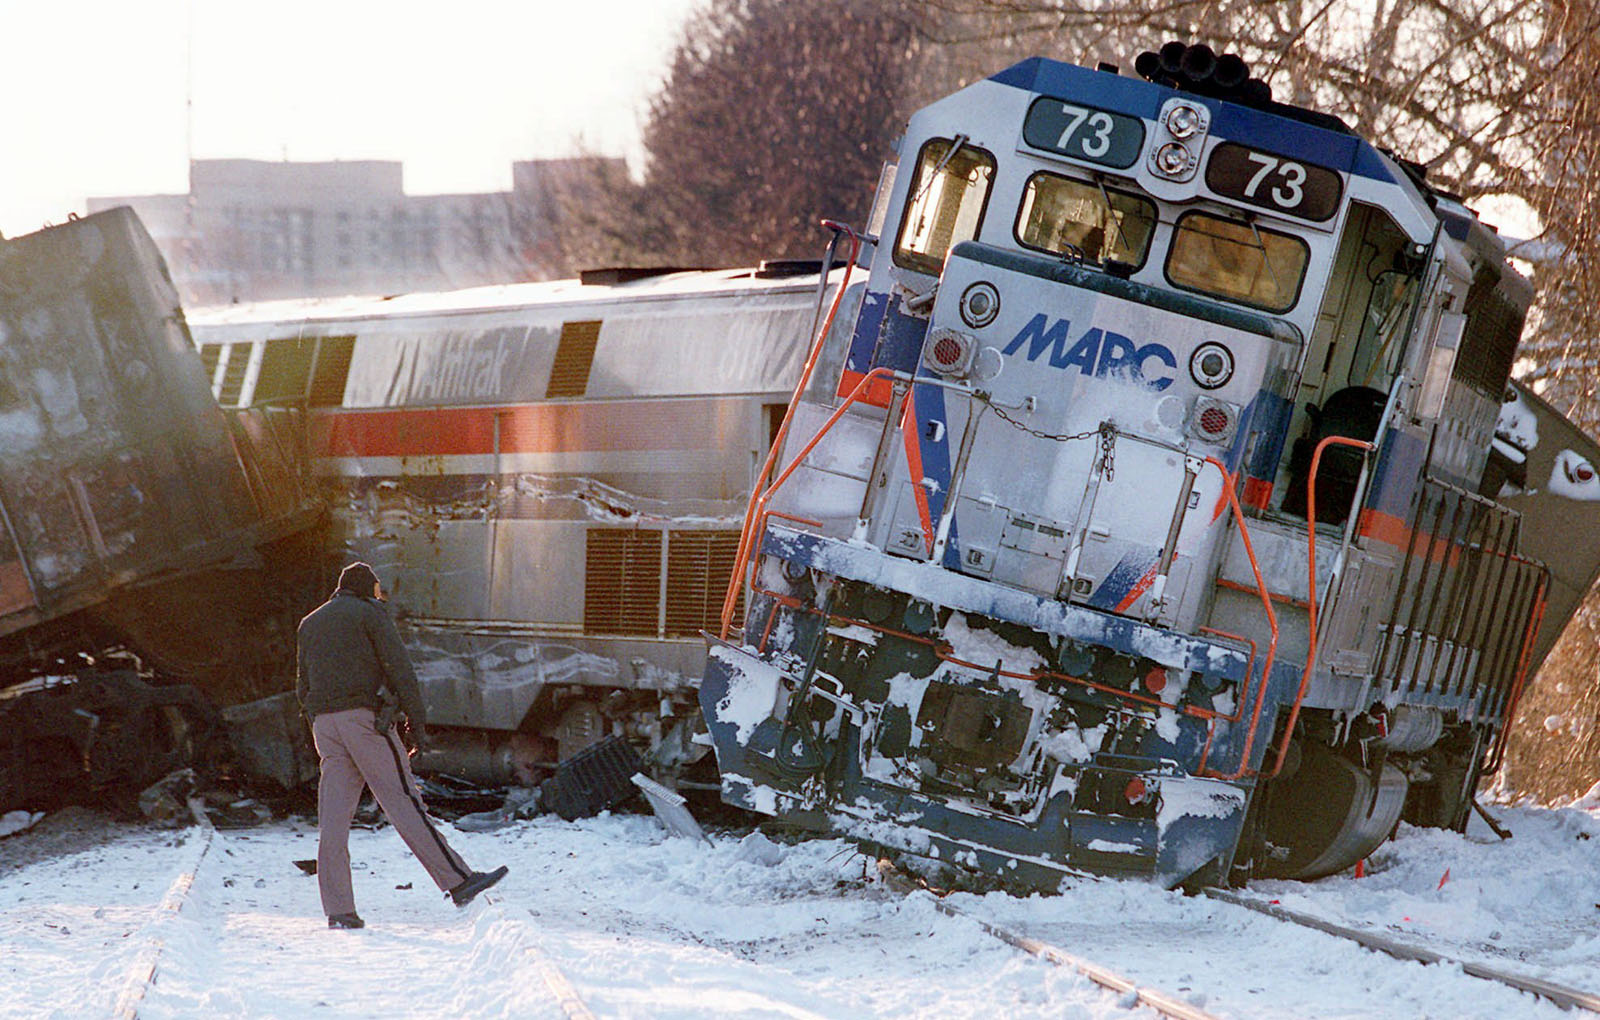 A police officer looks at the  site of a train crash  in Silver Spring, Md. Saturday Feb. 17, 1996. A Marc commuter train, right, carrying Job Corps youths home on a snowy evening Friday was crushed by an Amtrak train bound for Chicago, leaving at least 11 passengers dead. Transit officials said there were only 17 passengers on the commuter train, and Job Corps officials said 14 trainees from a West Virginia center had been aboard, returning to the Washington, D.C., area for the weekend. (AP Photo/Ruth Fremson)